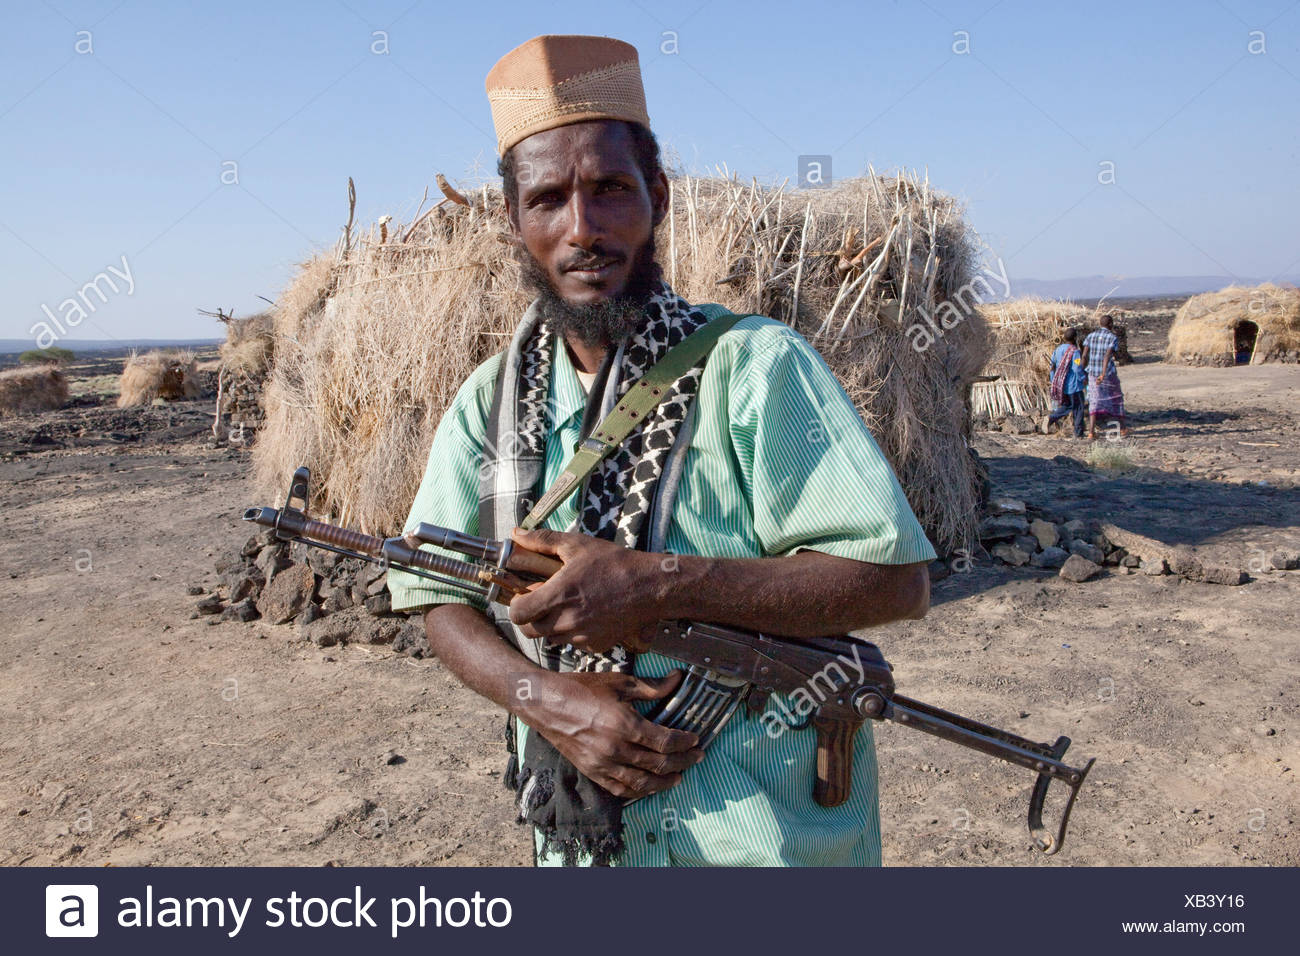 Volcano, Ertale, volcanical, Africa, hut, guard, man, submachine gun - Stock Image